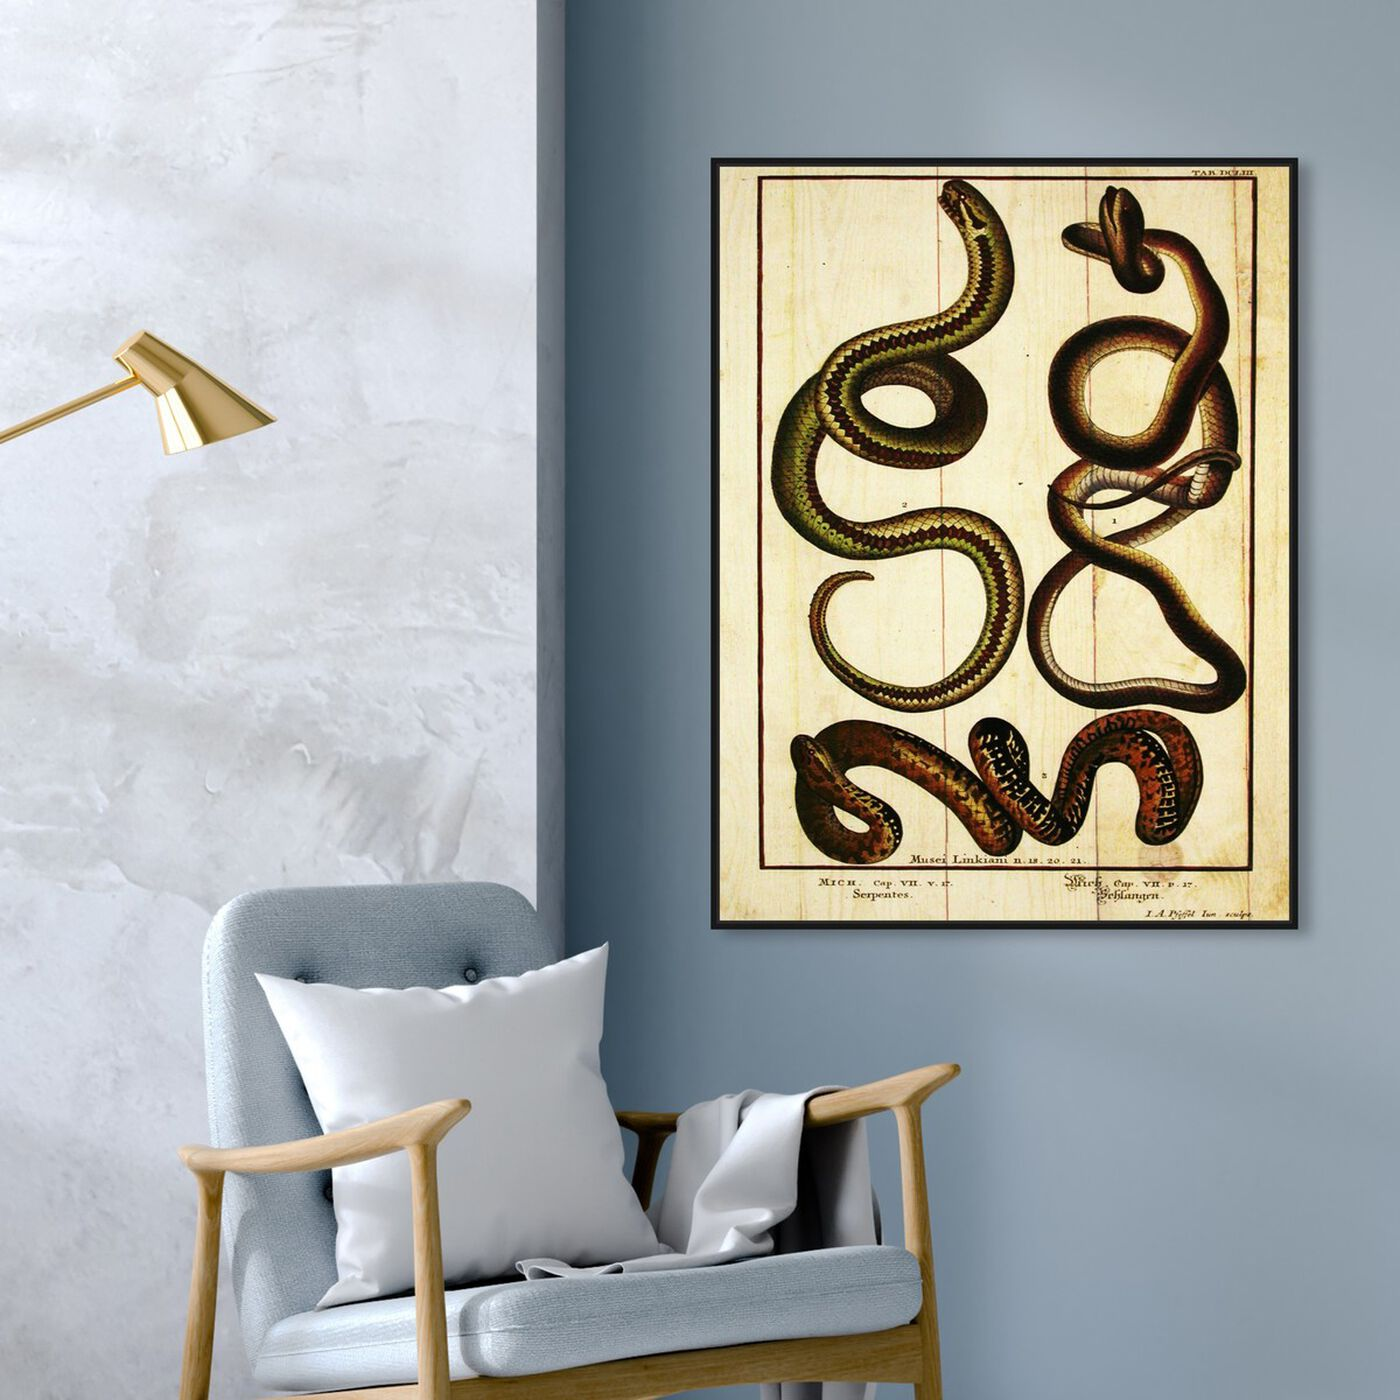 Hanging view of Snakes II featuring animals and zoo and wild animals art.